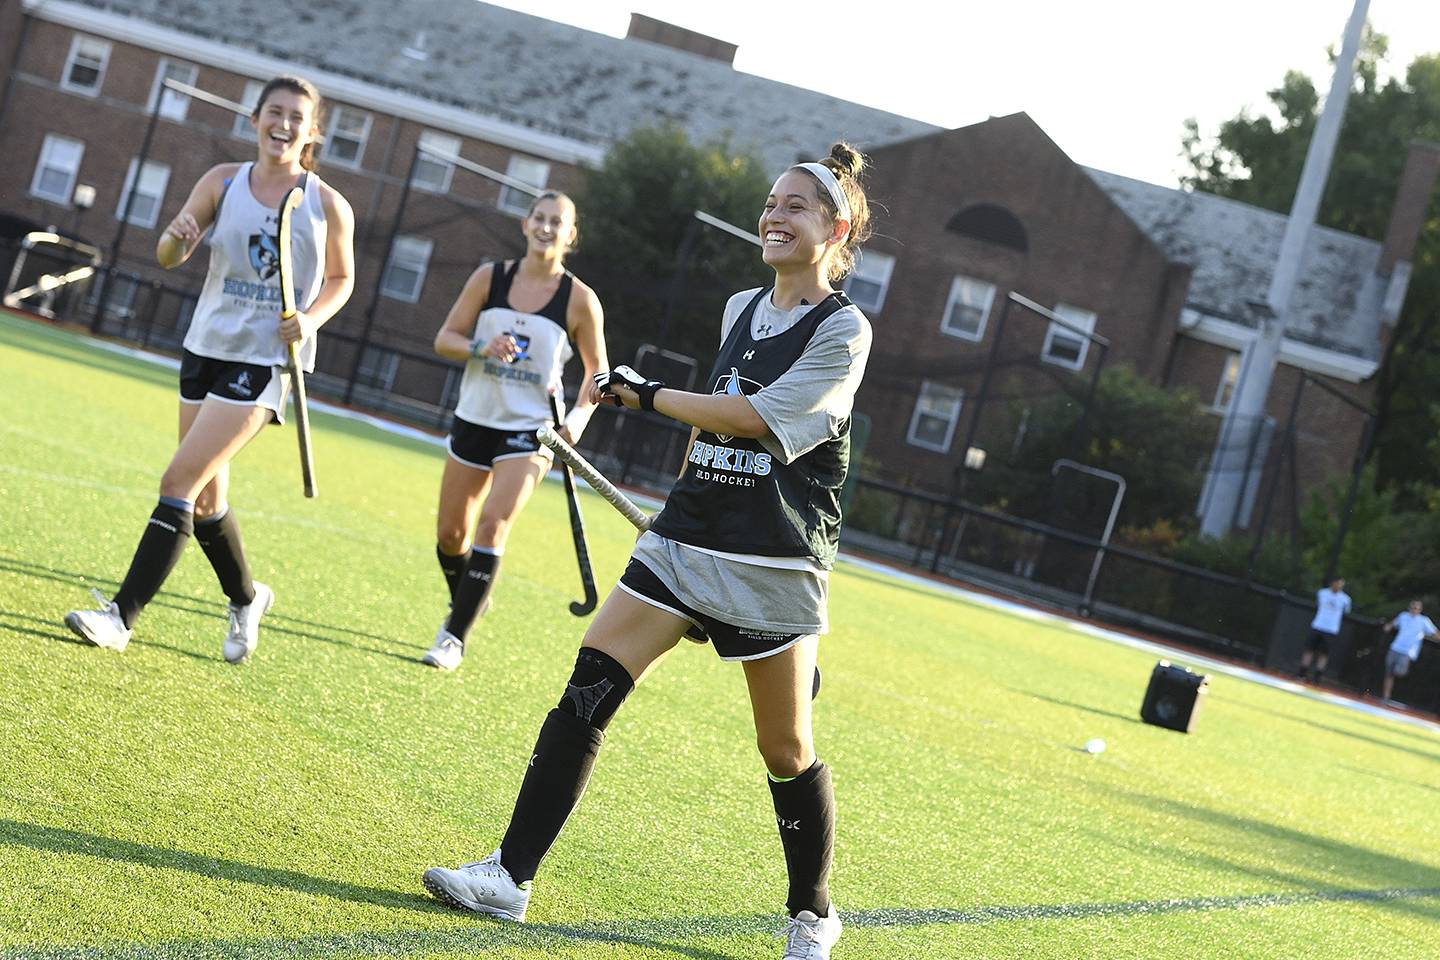 Field hockey player strides confidently across the field